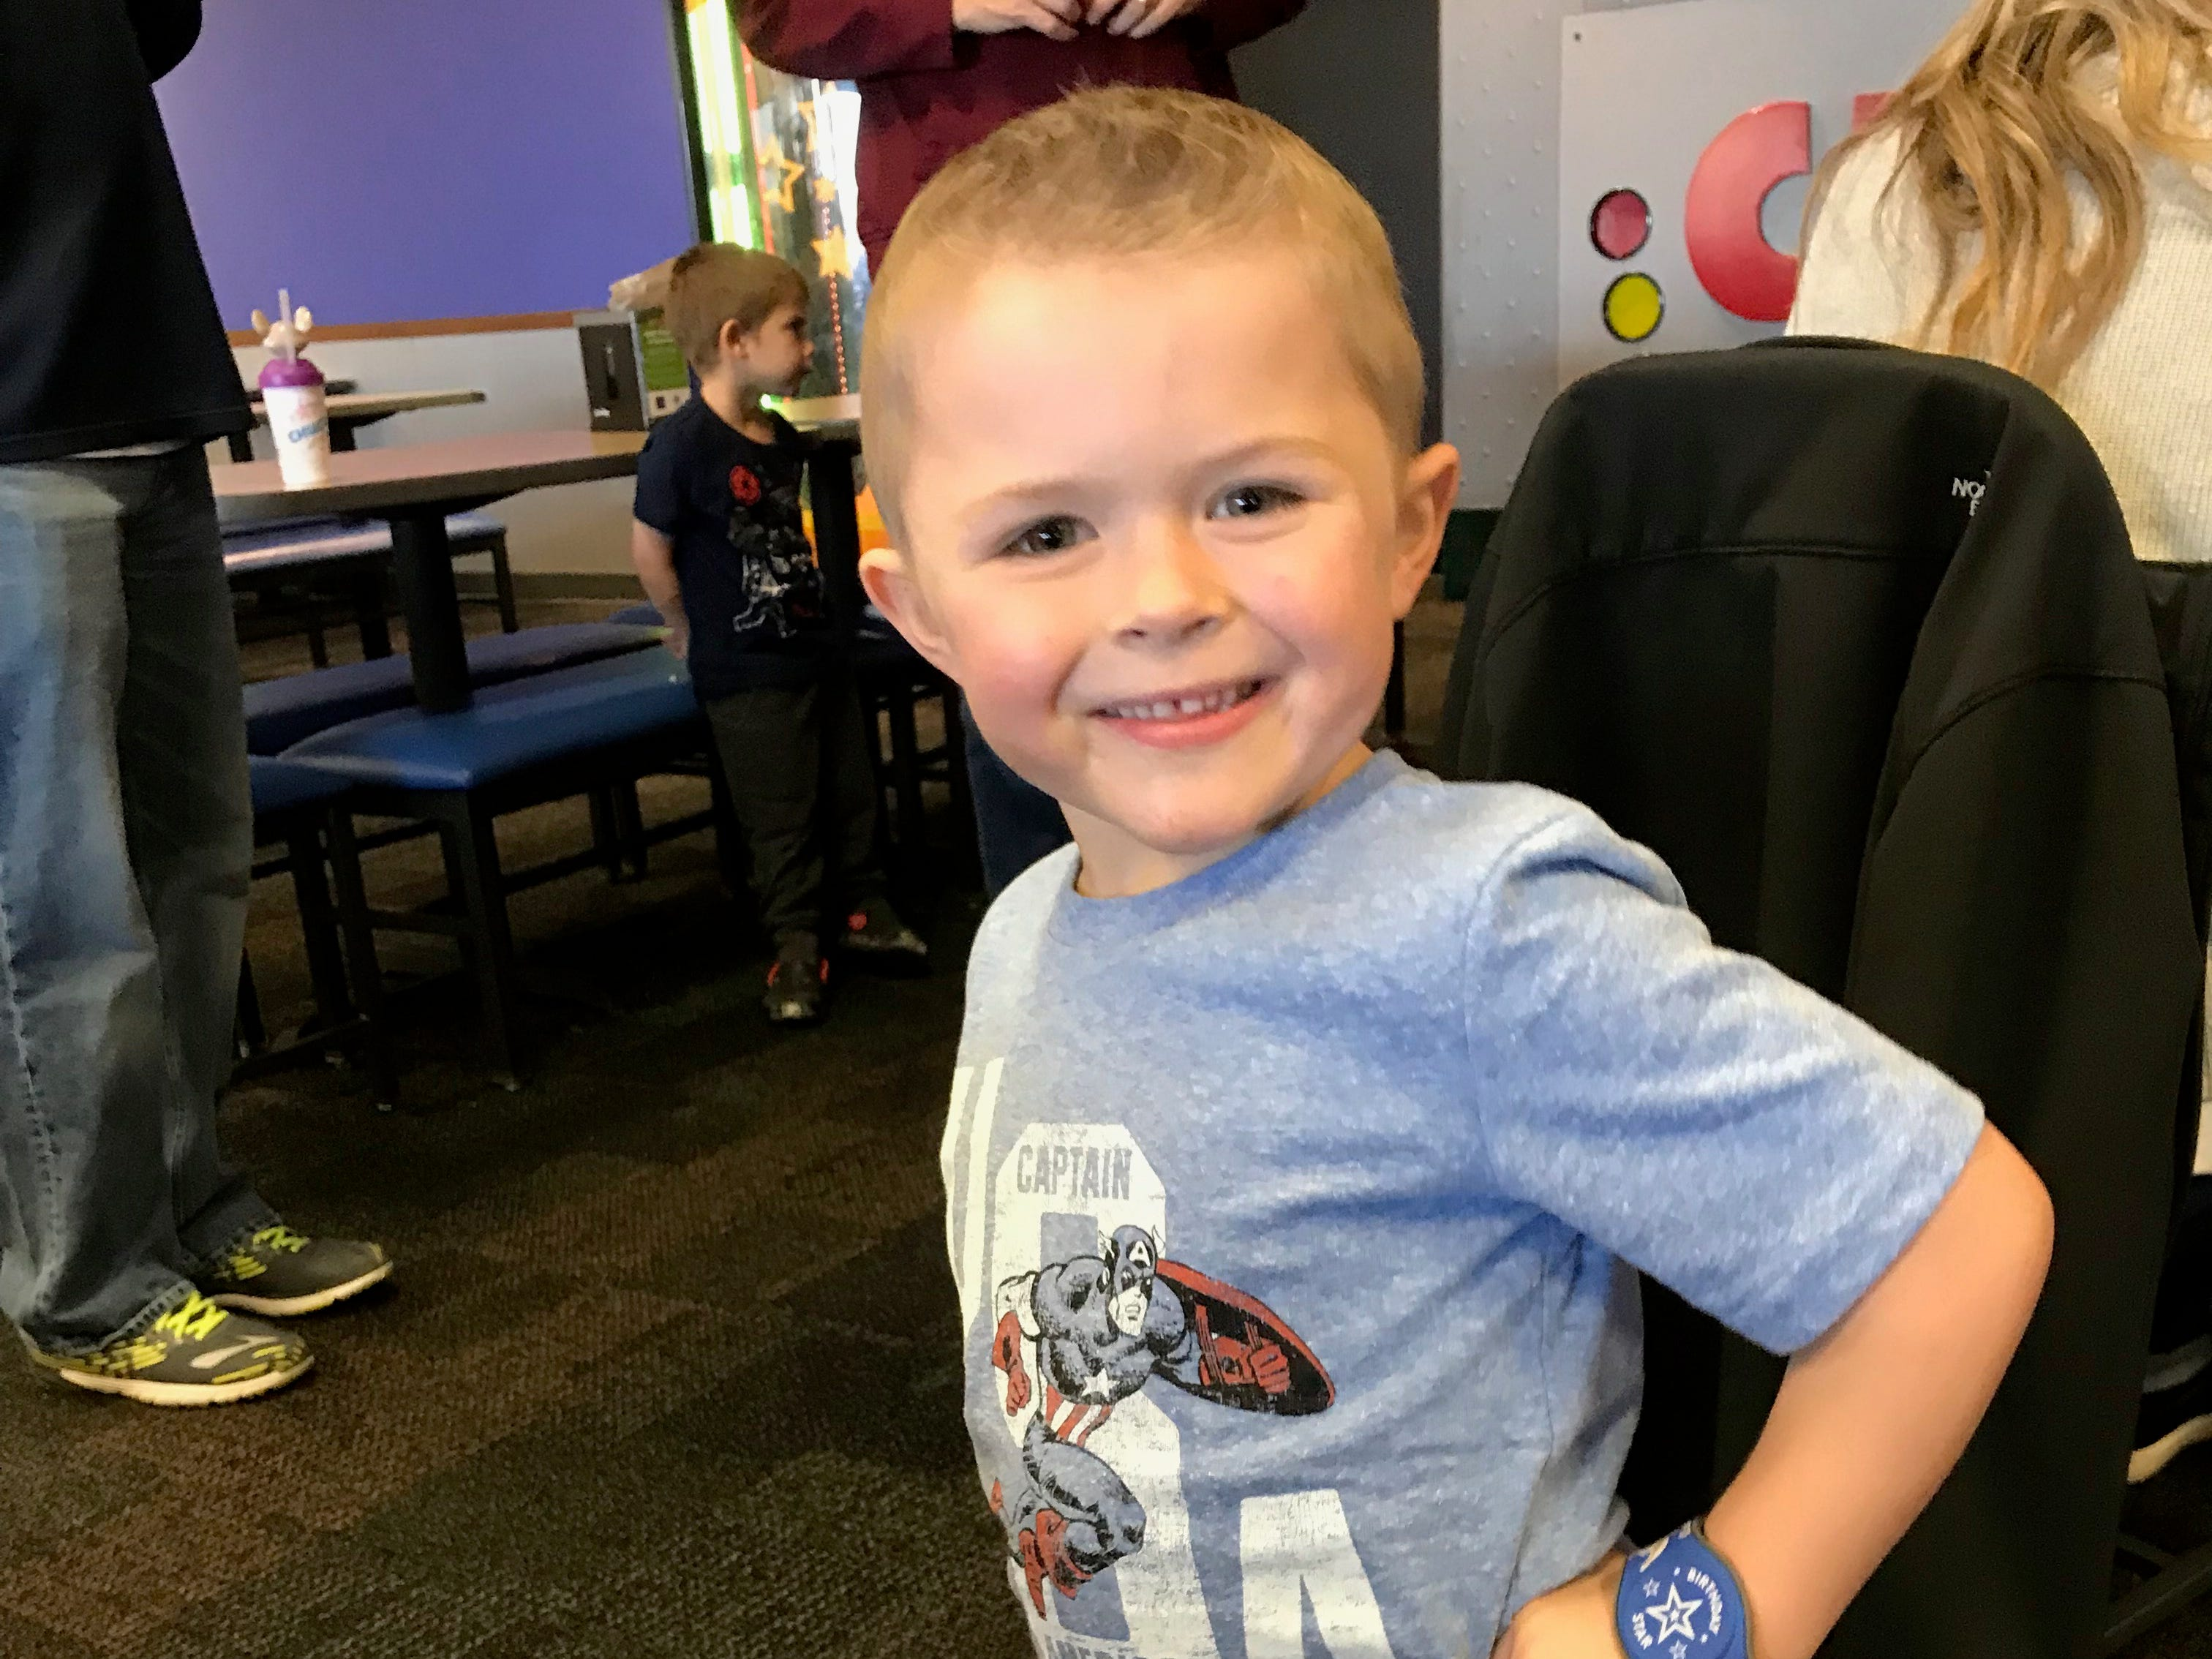 Five-year-old Lincoln Maziasz, who is going through treatment for leukemia, poses at his birthday party at Chuck E. Cheese.